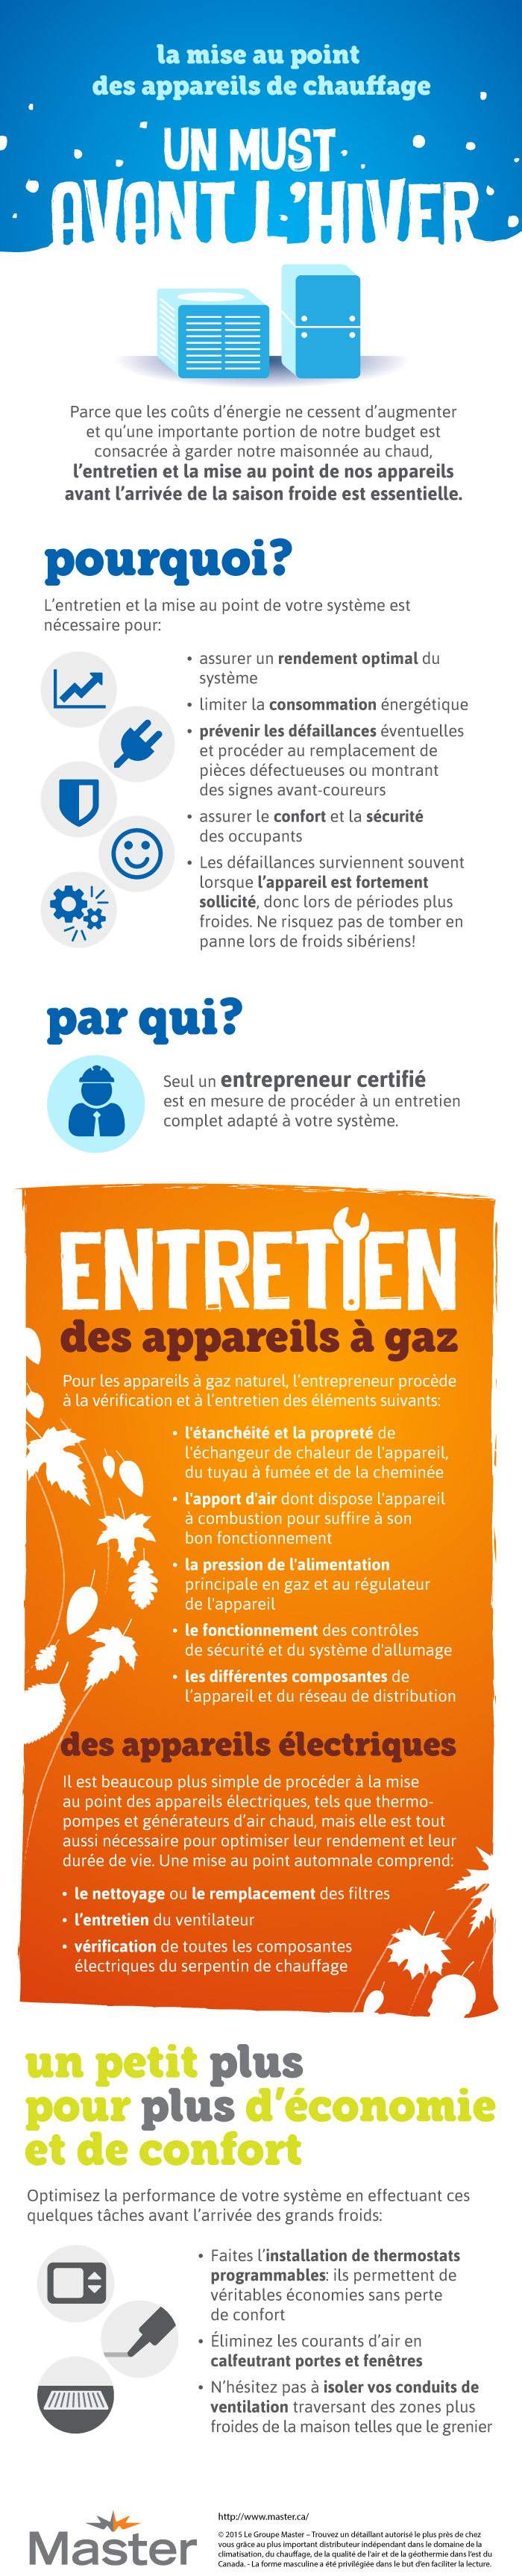 Infographie chauffage hiver